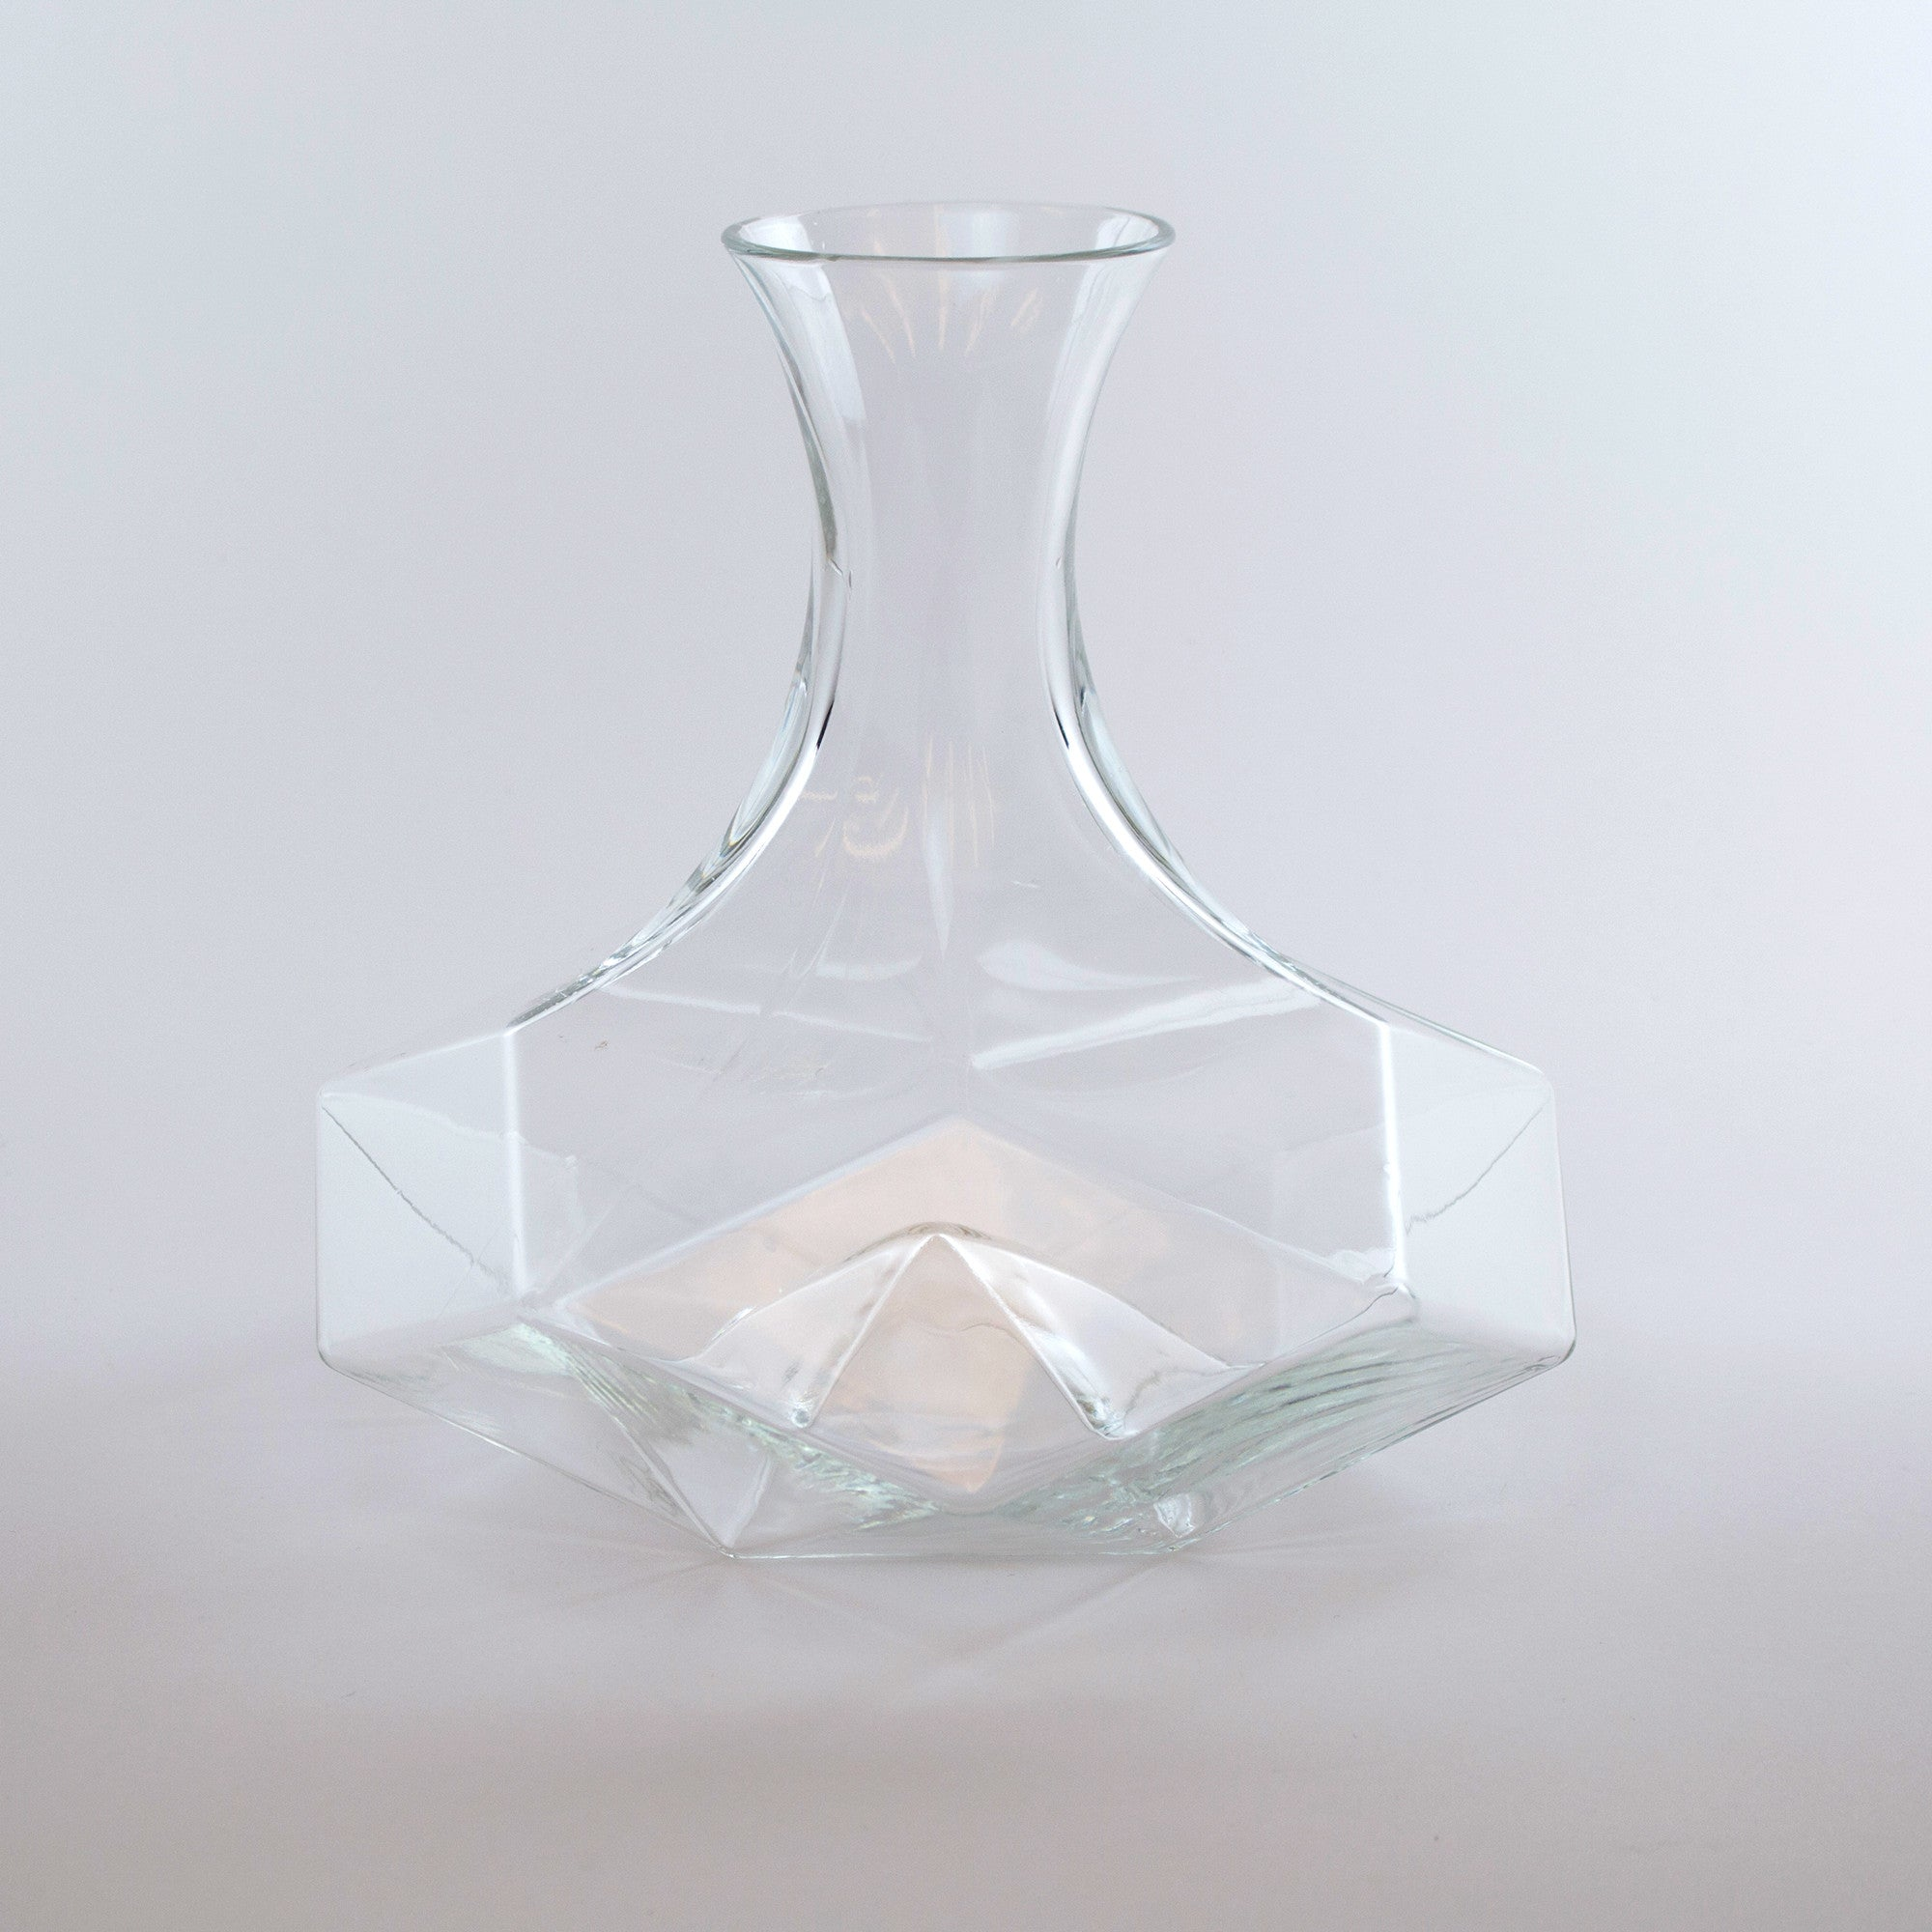 The Geometric Crystal Decanter is our best-selling decanter for wine